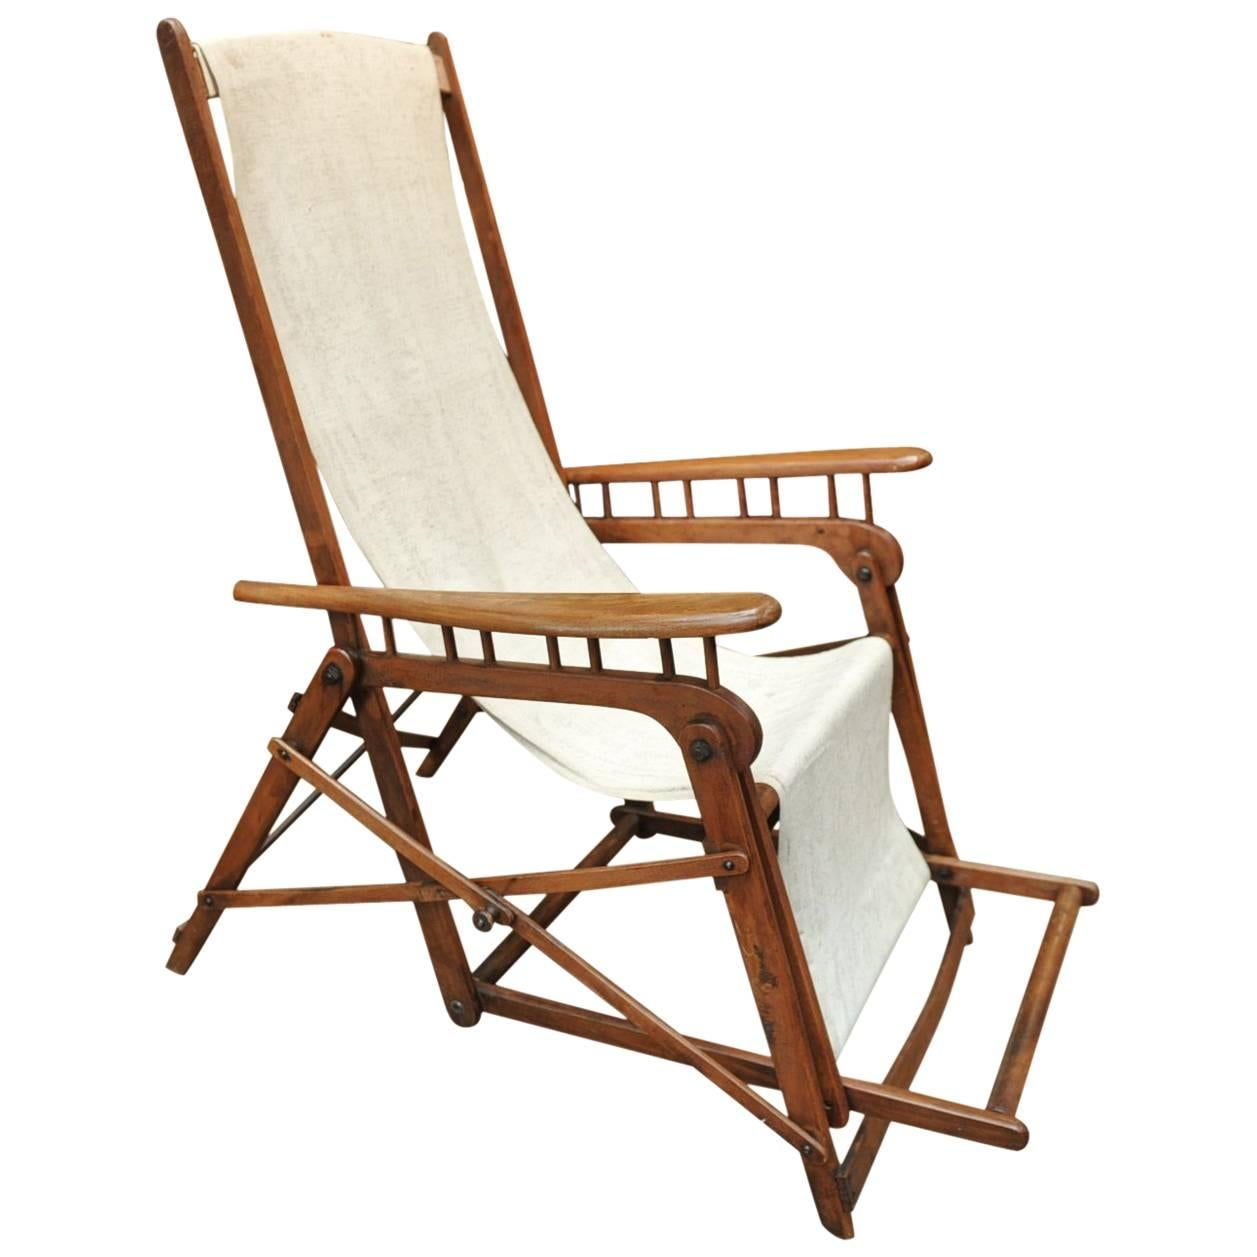 By Asca System Longue French Folding Chair 1920s H29EDWI